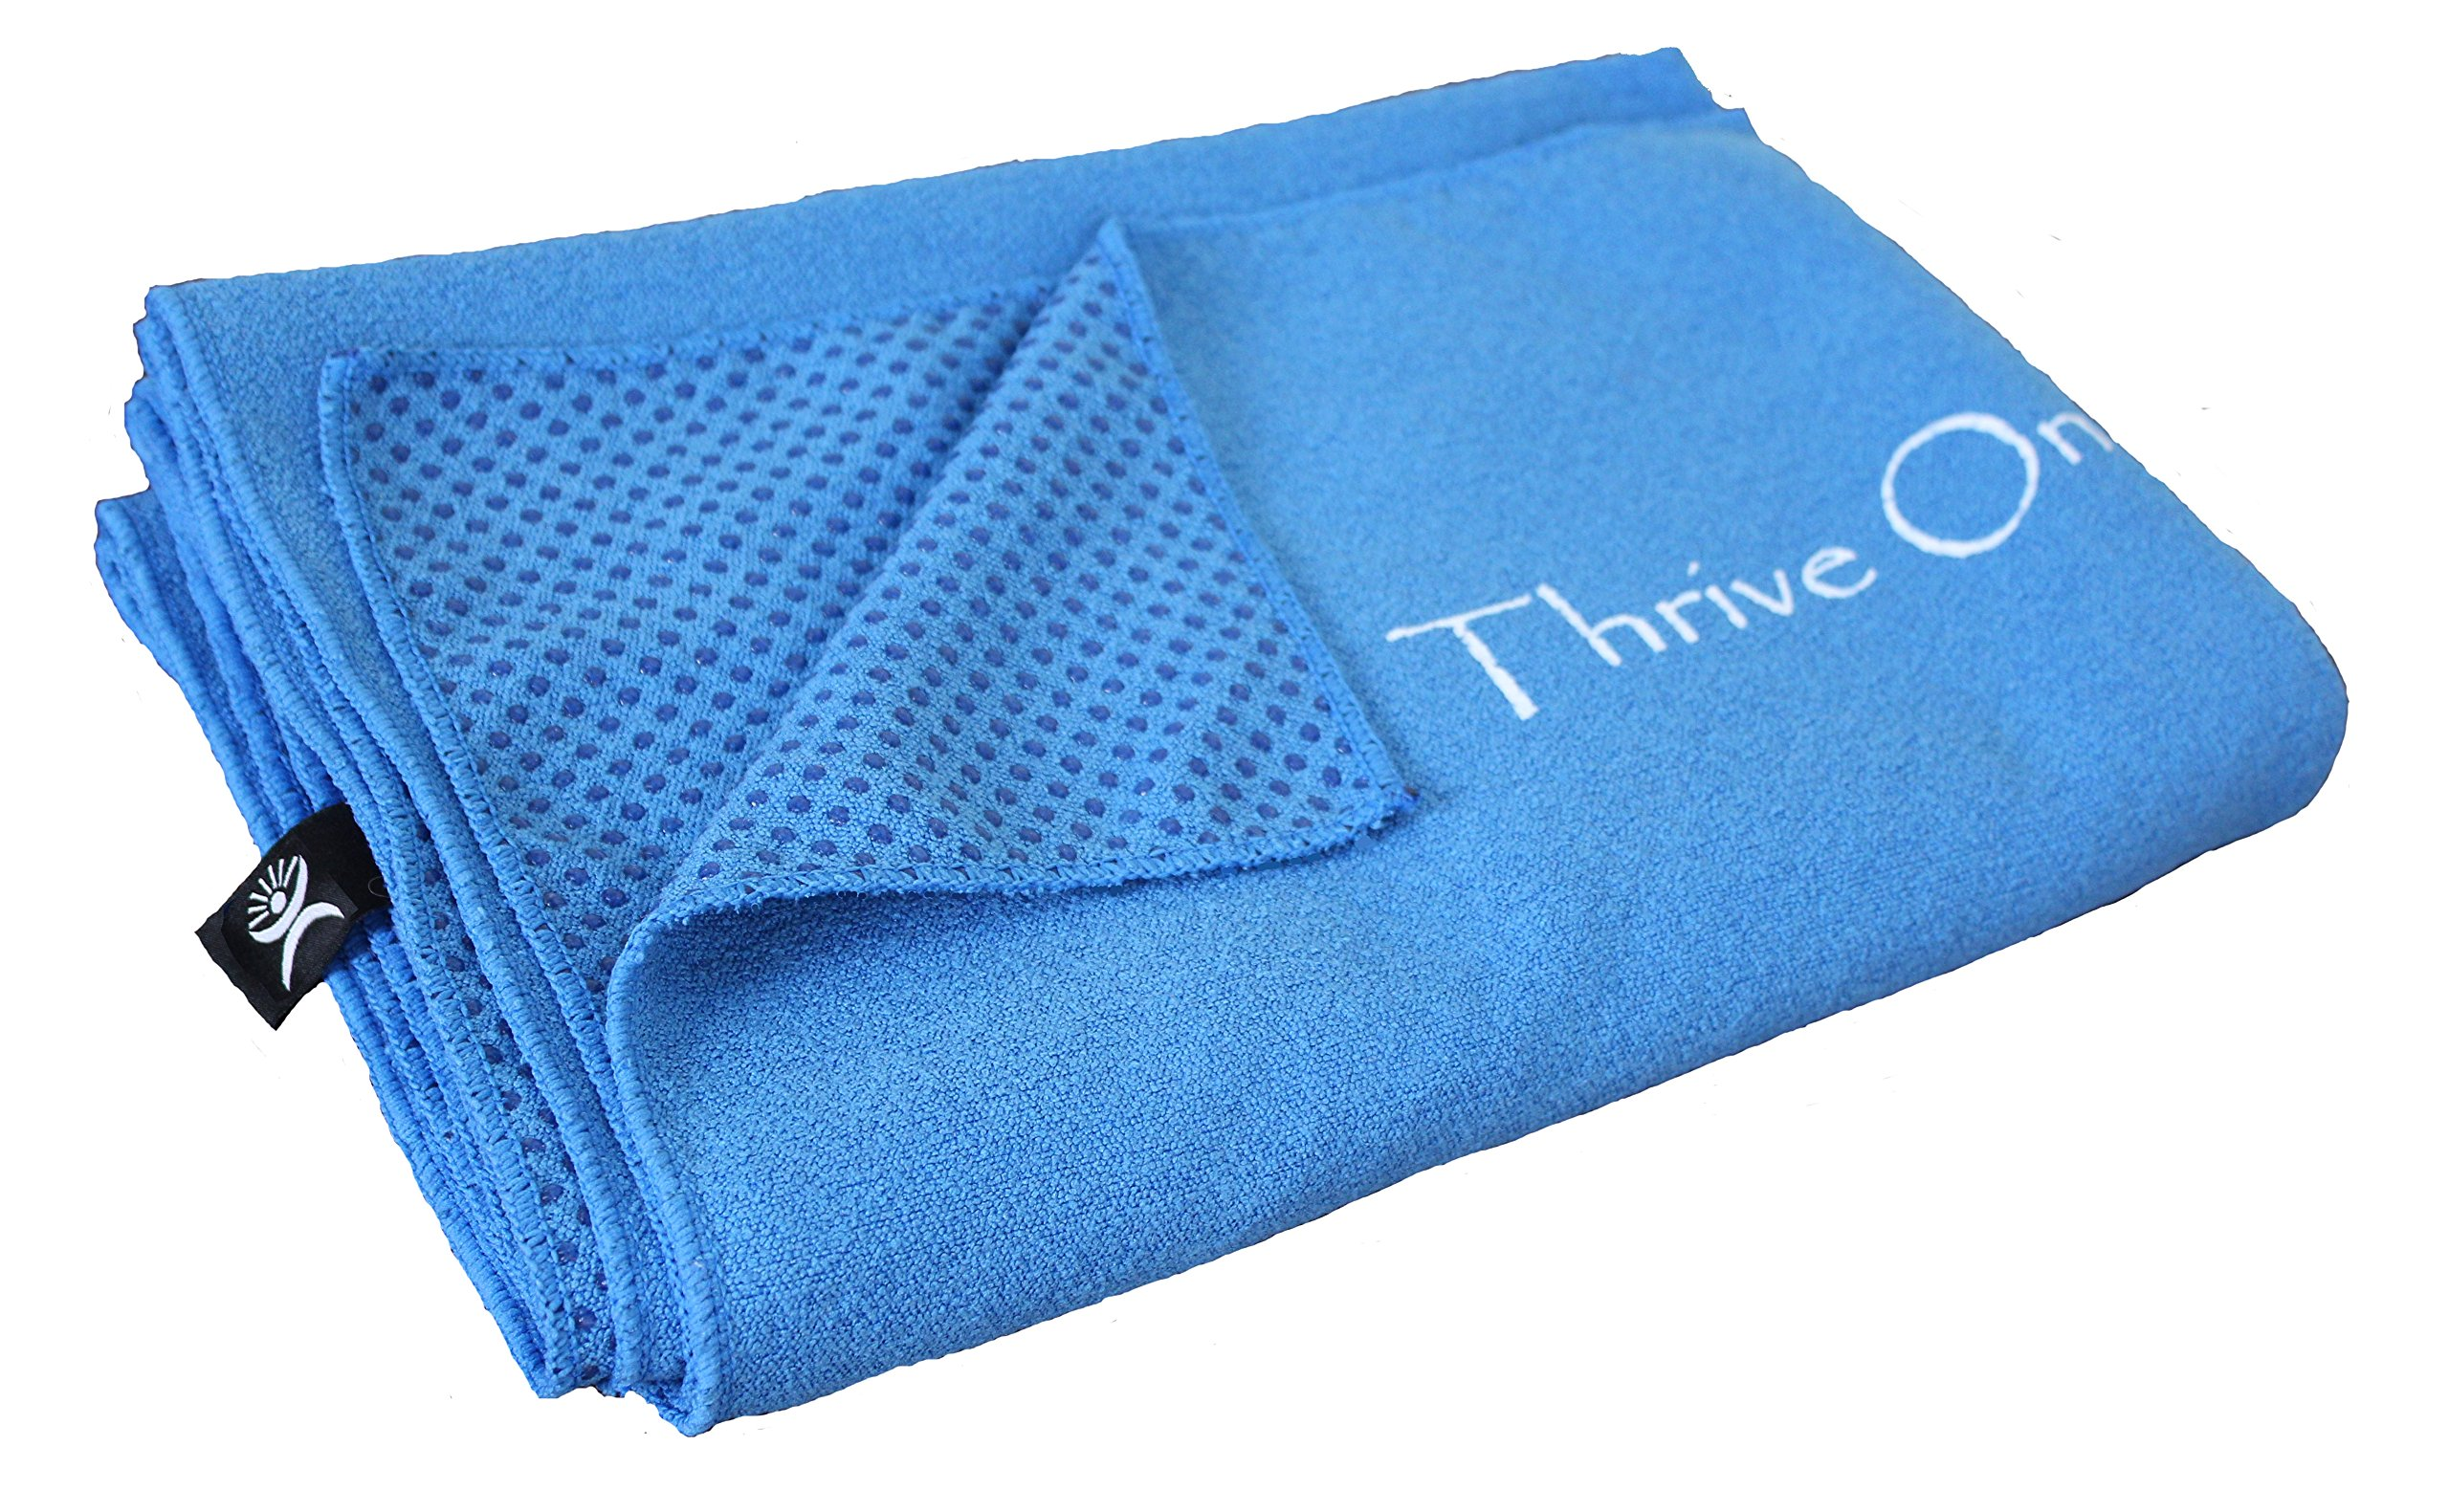 Thrive On Wellness Yoga Towel Mat - 74 in. X 26 in. Full Coverage Extra Large, Soft Microfiber Surface Non-skid Silicone Floor Grips, BEST Travel, Hot Yoga, Pilates High Sweat Exercise by Thrive On Wellness